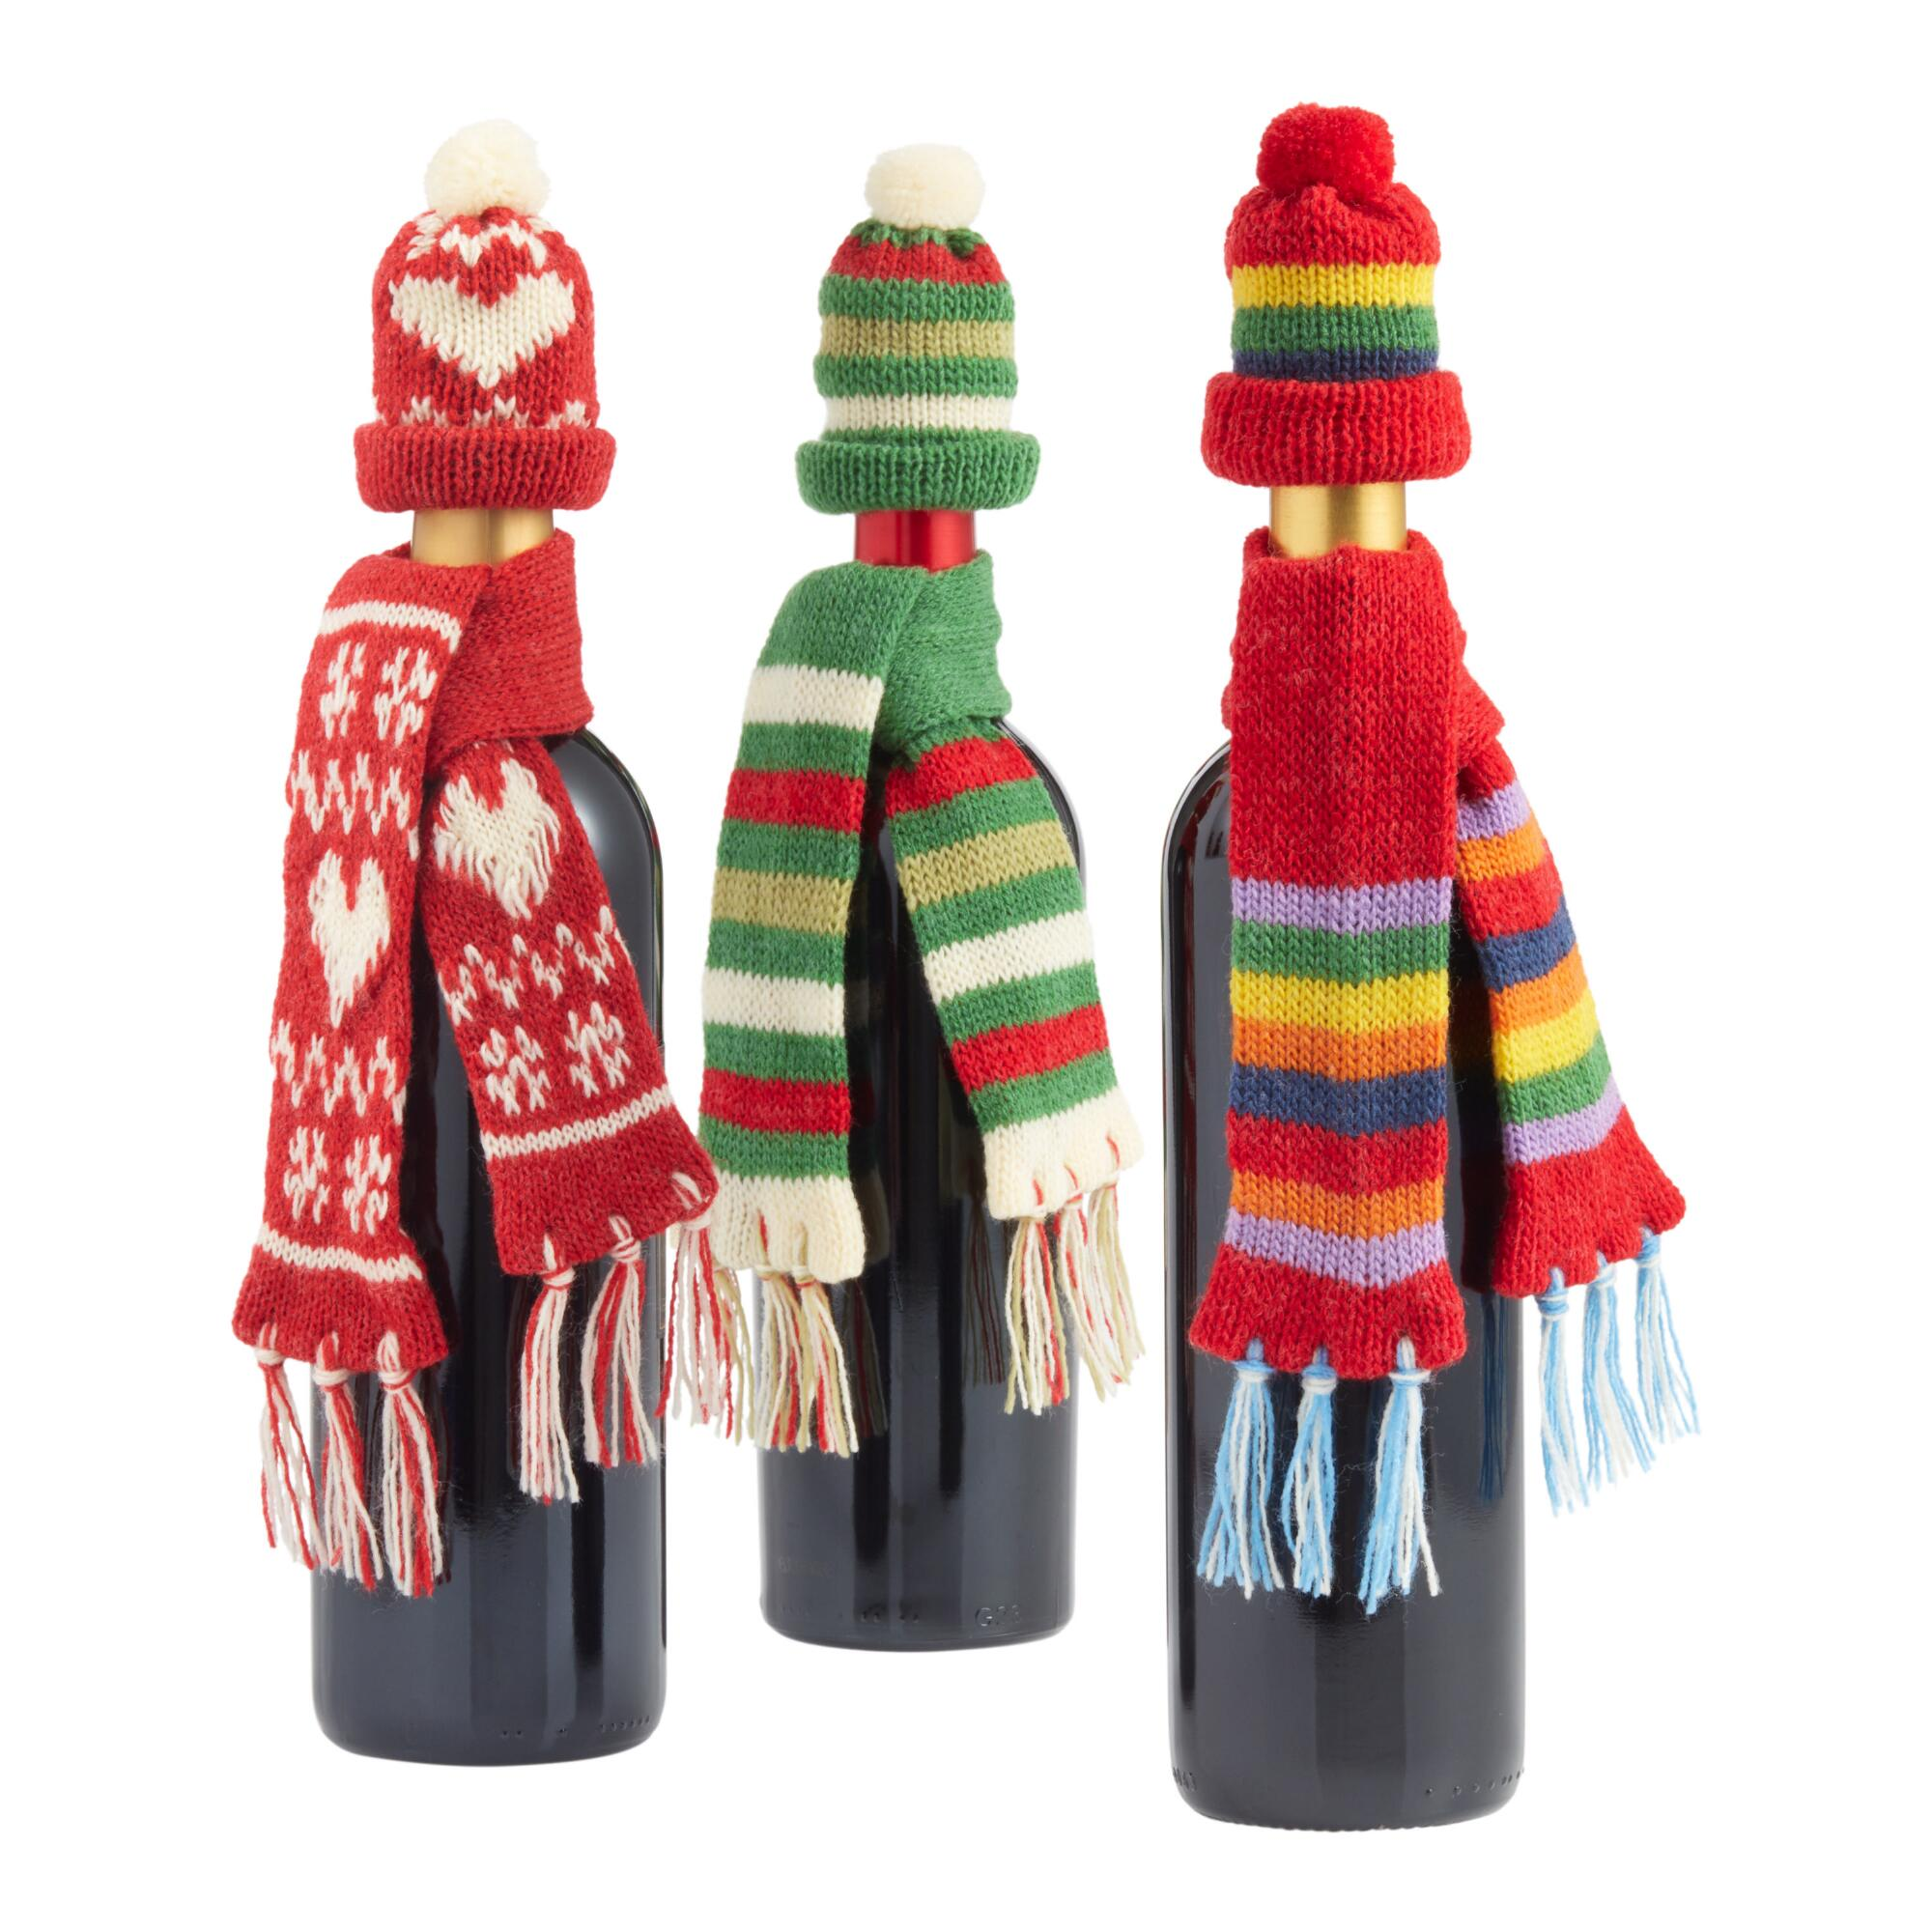 Winter Hat And Scarf Bottle Outfits Set Of 3 $14.97